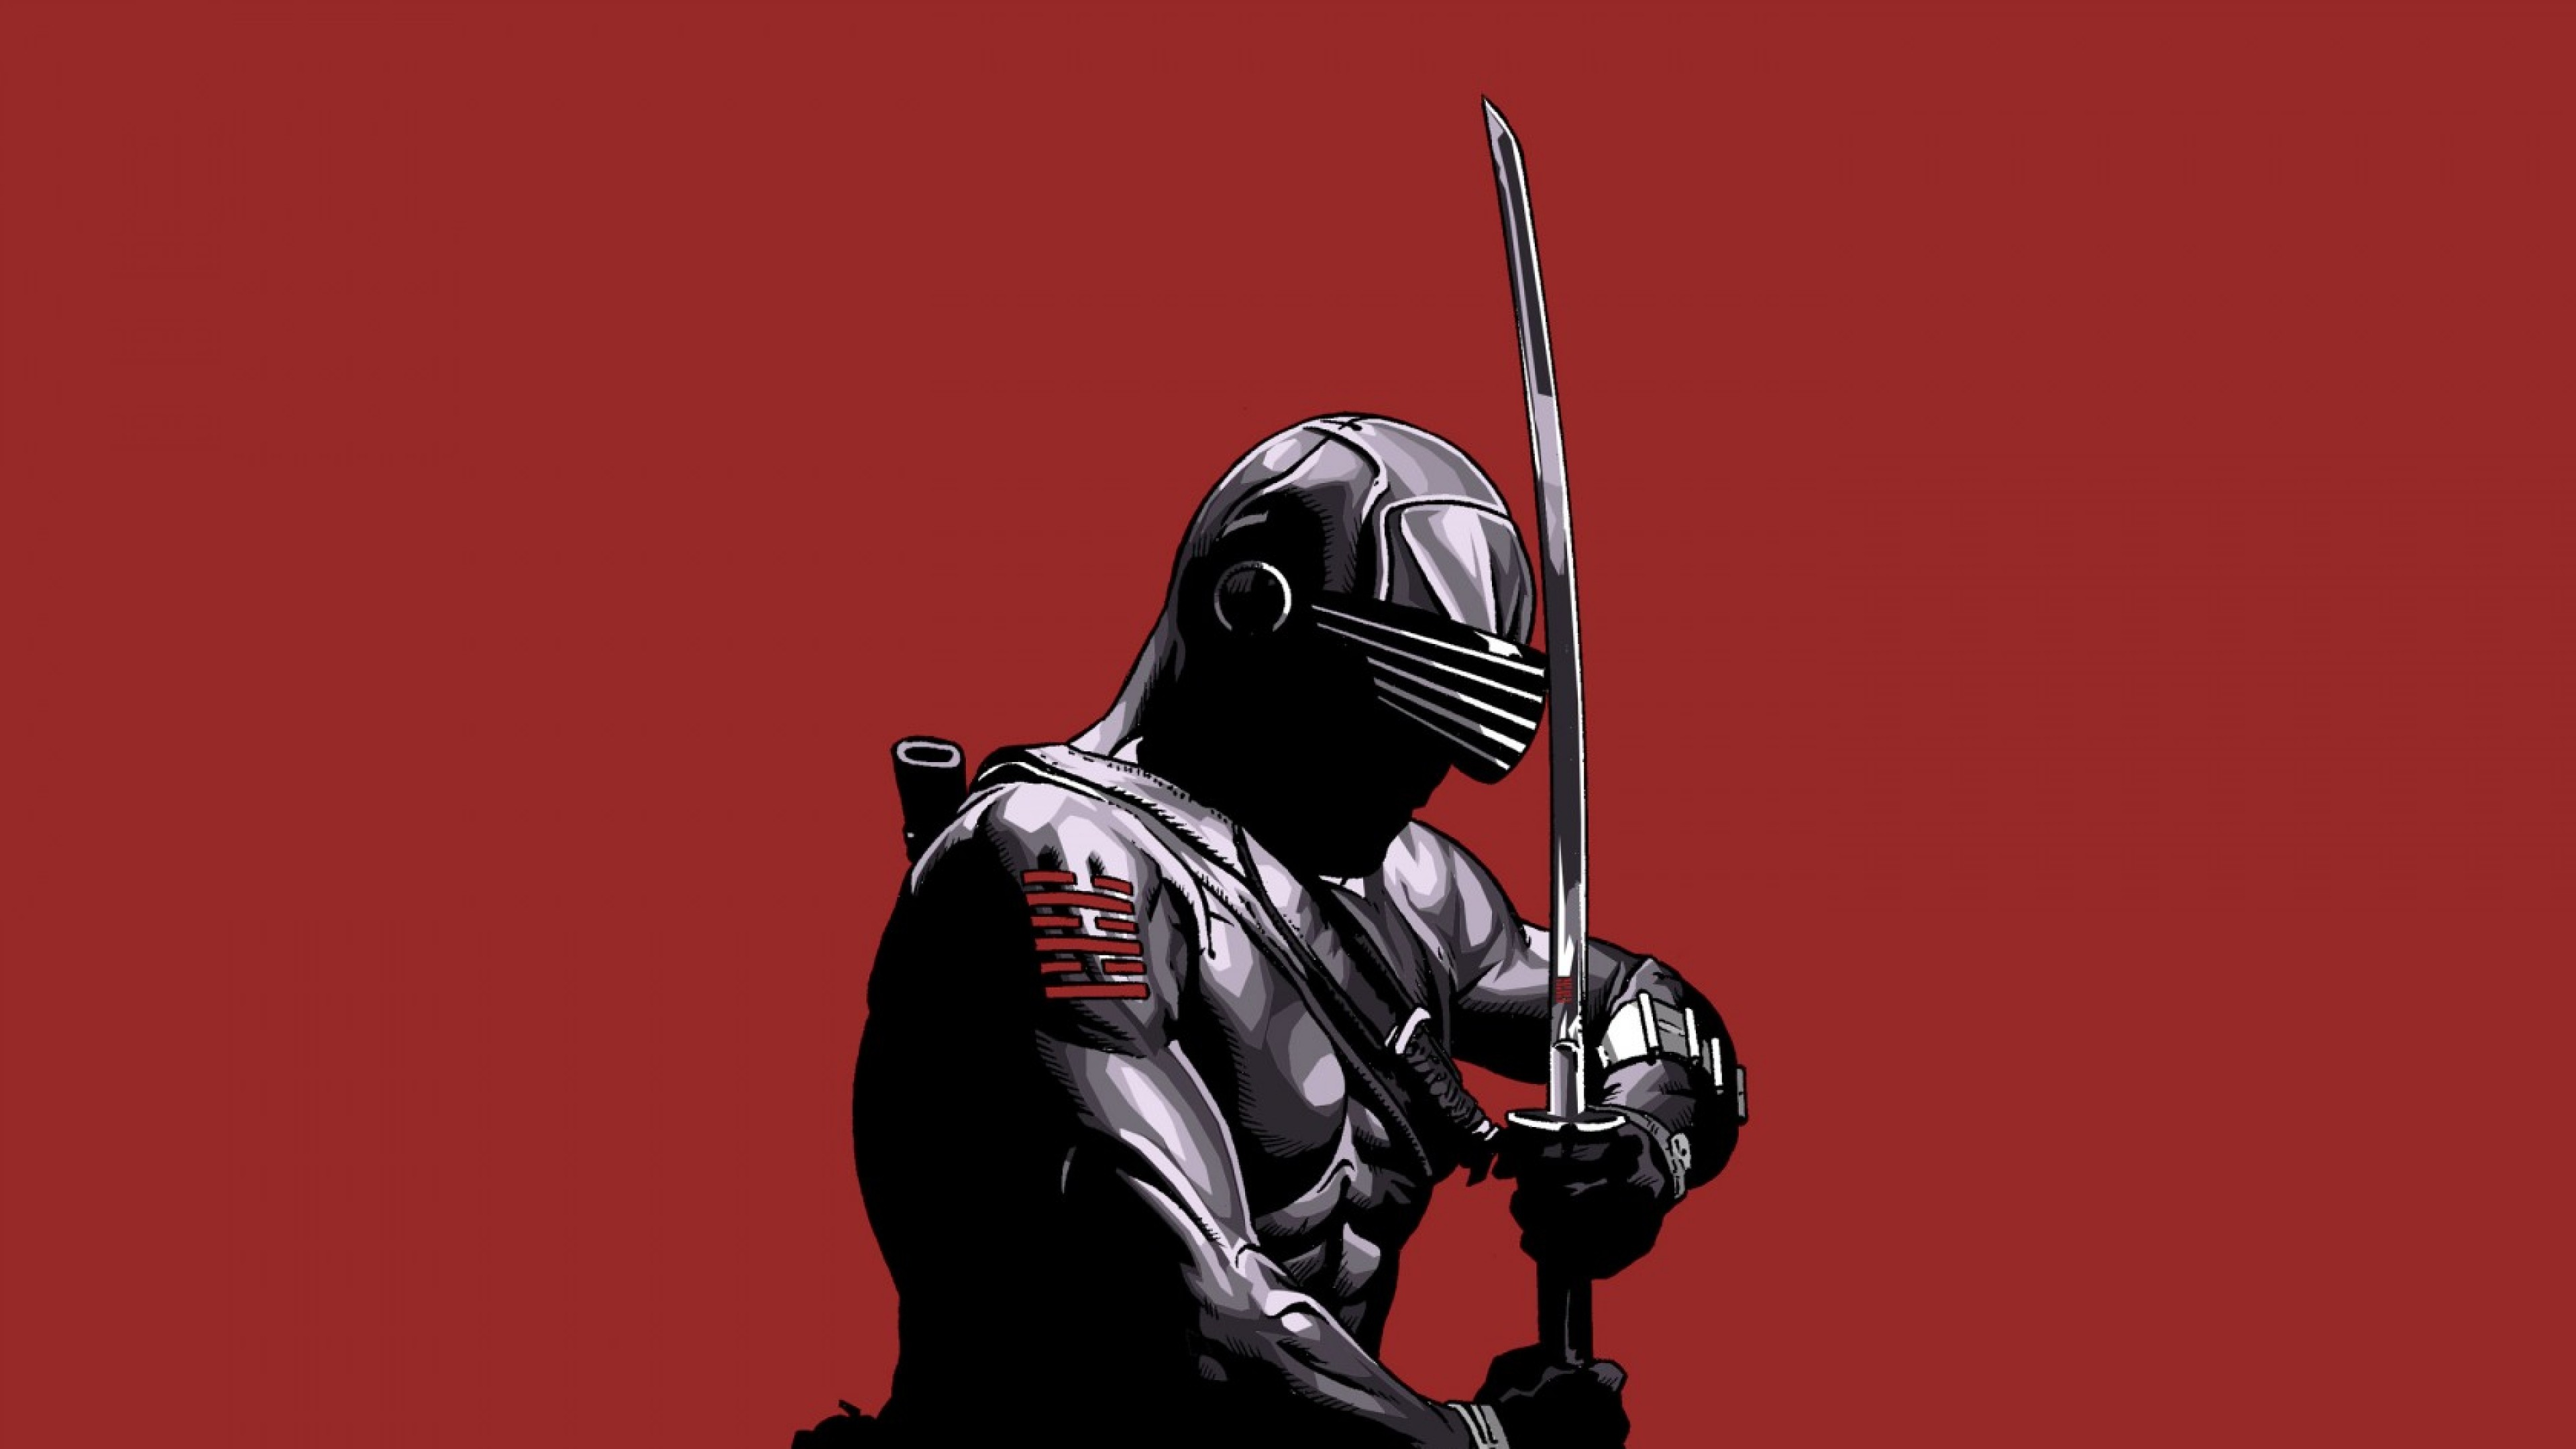 3840x2160  Wallpaper gi joe the rise of cobra, ninja, sword, art, helmet